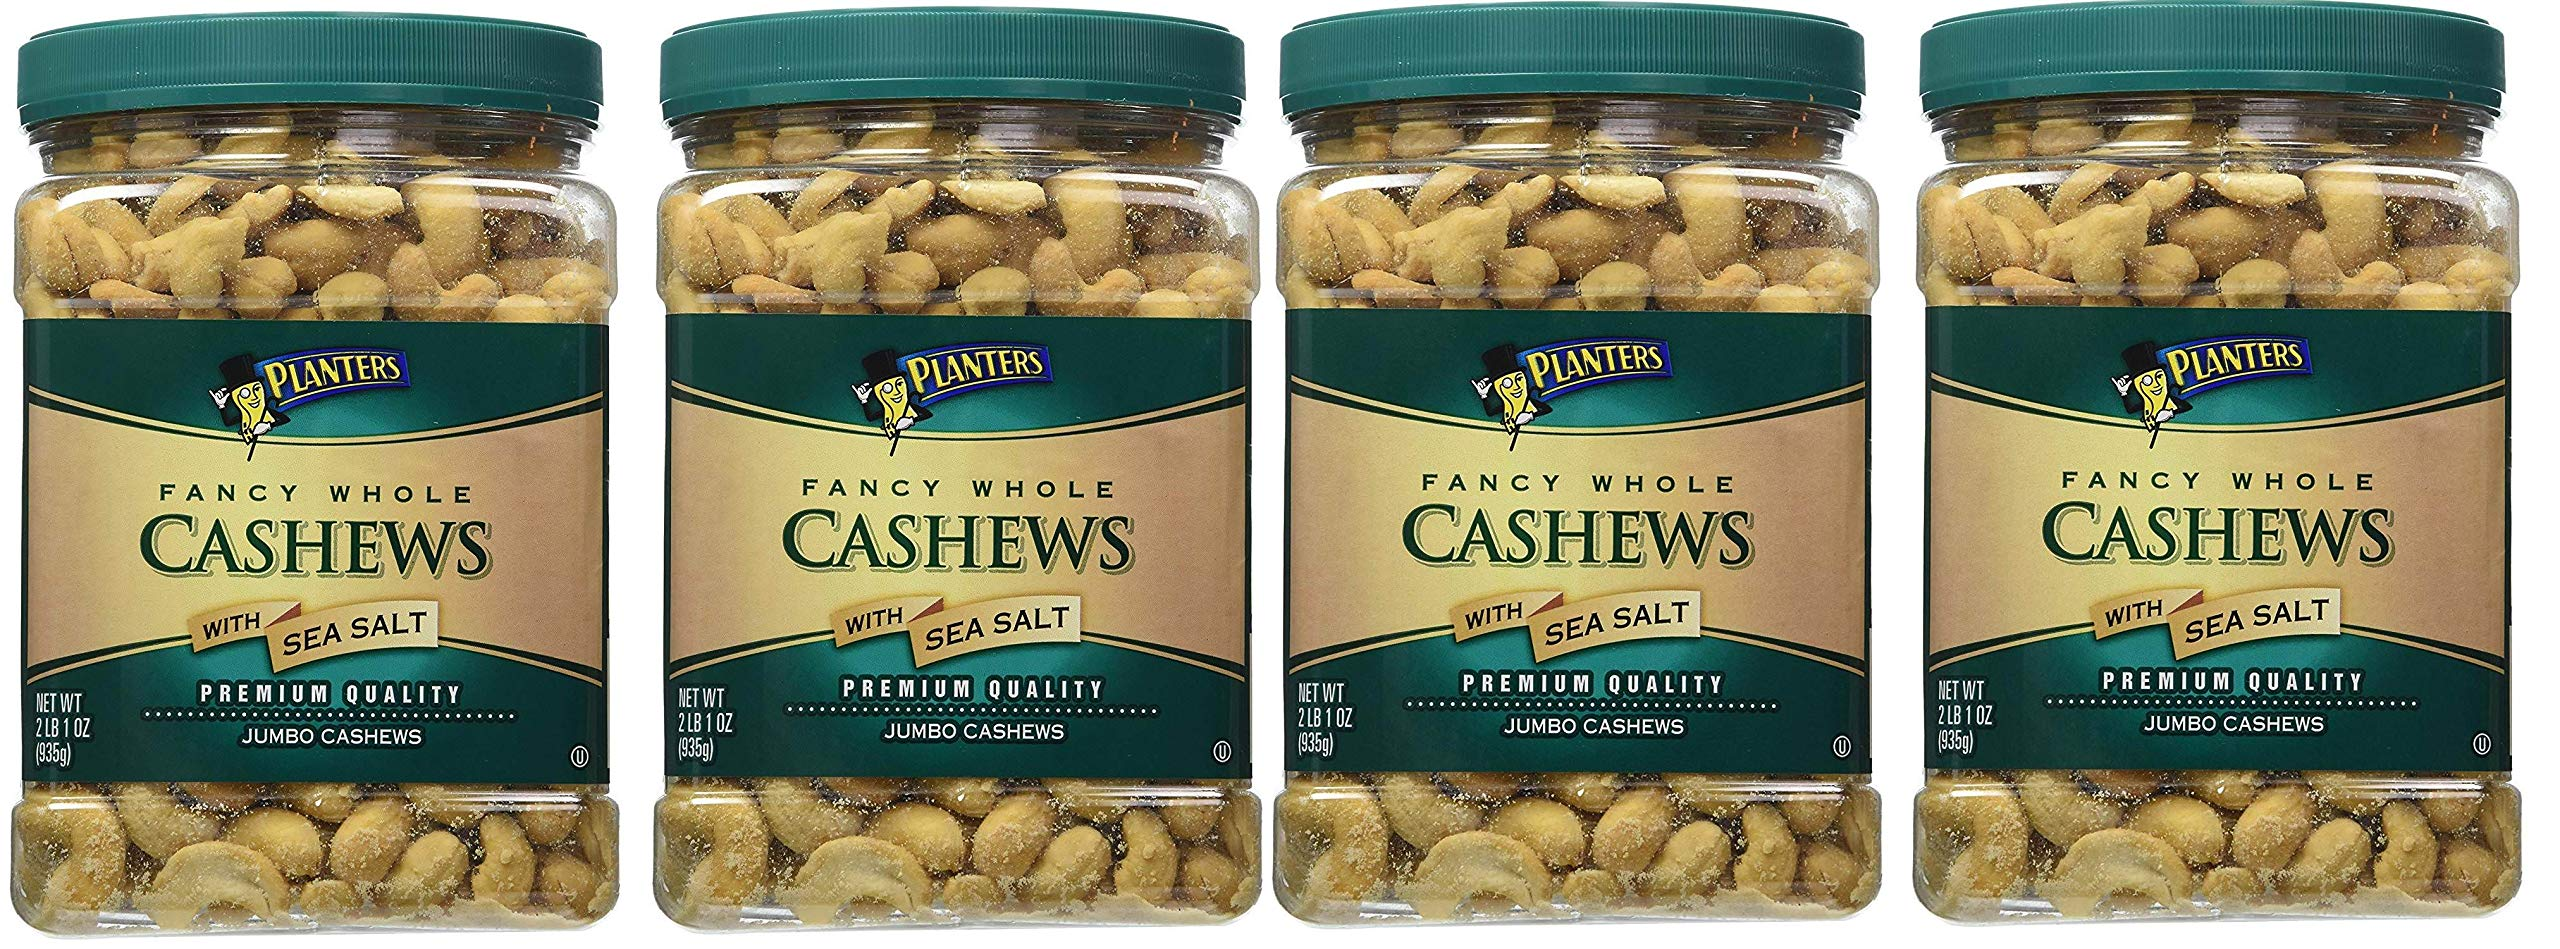 Planters Fancy Whole Cashews, Salted, 33 Ounce, 4 Tubs